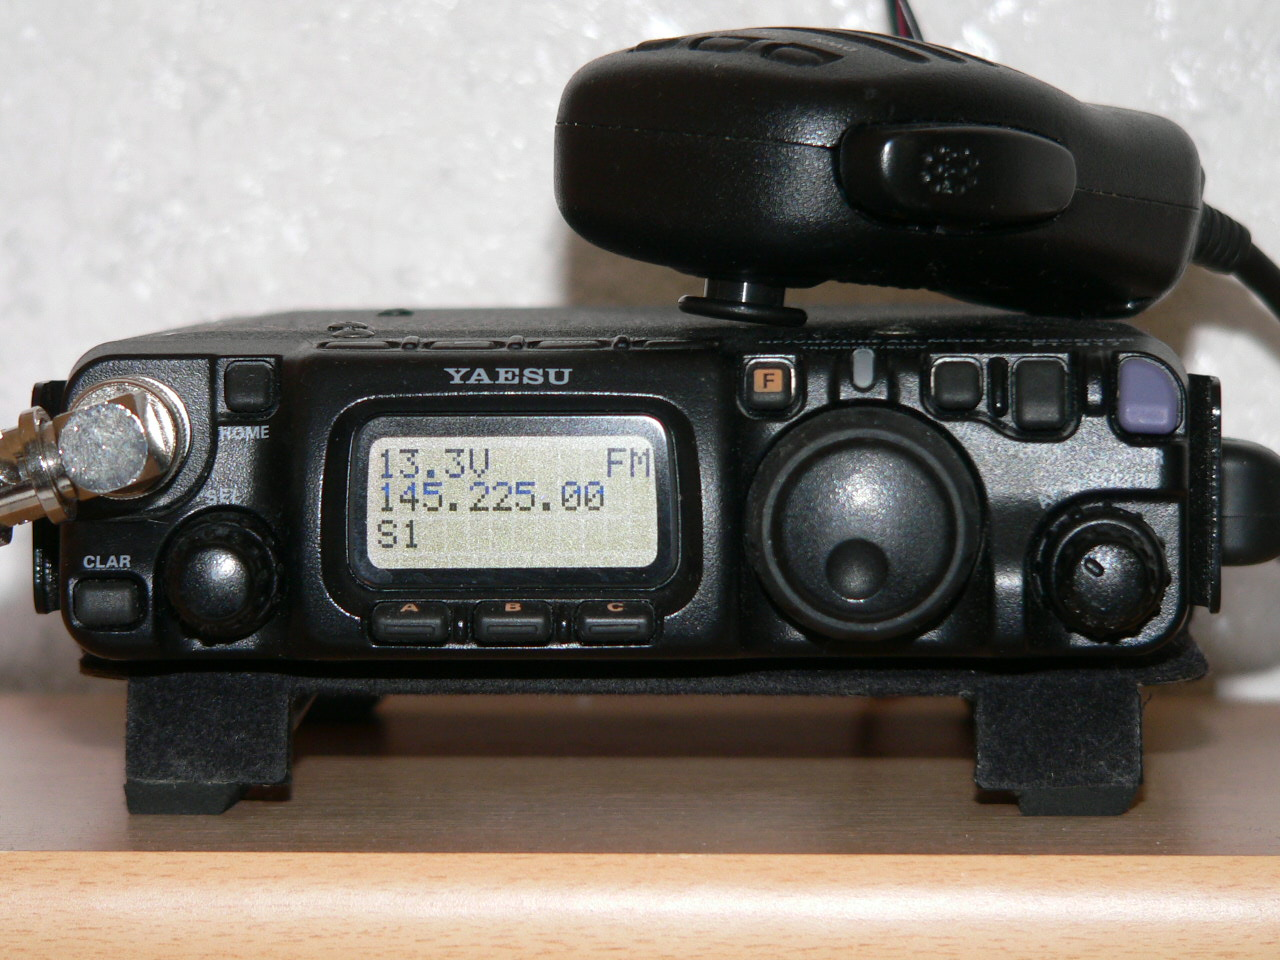 File:Yaesu FT-817 (1).jpg - Wikimedia Commons